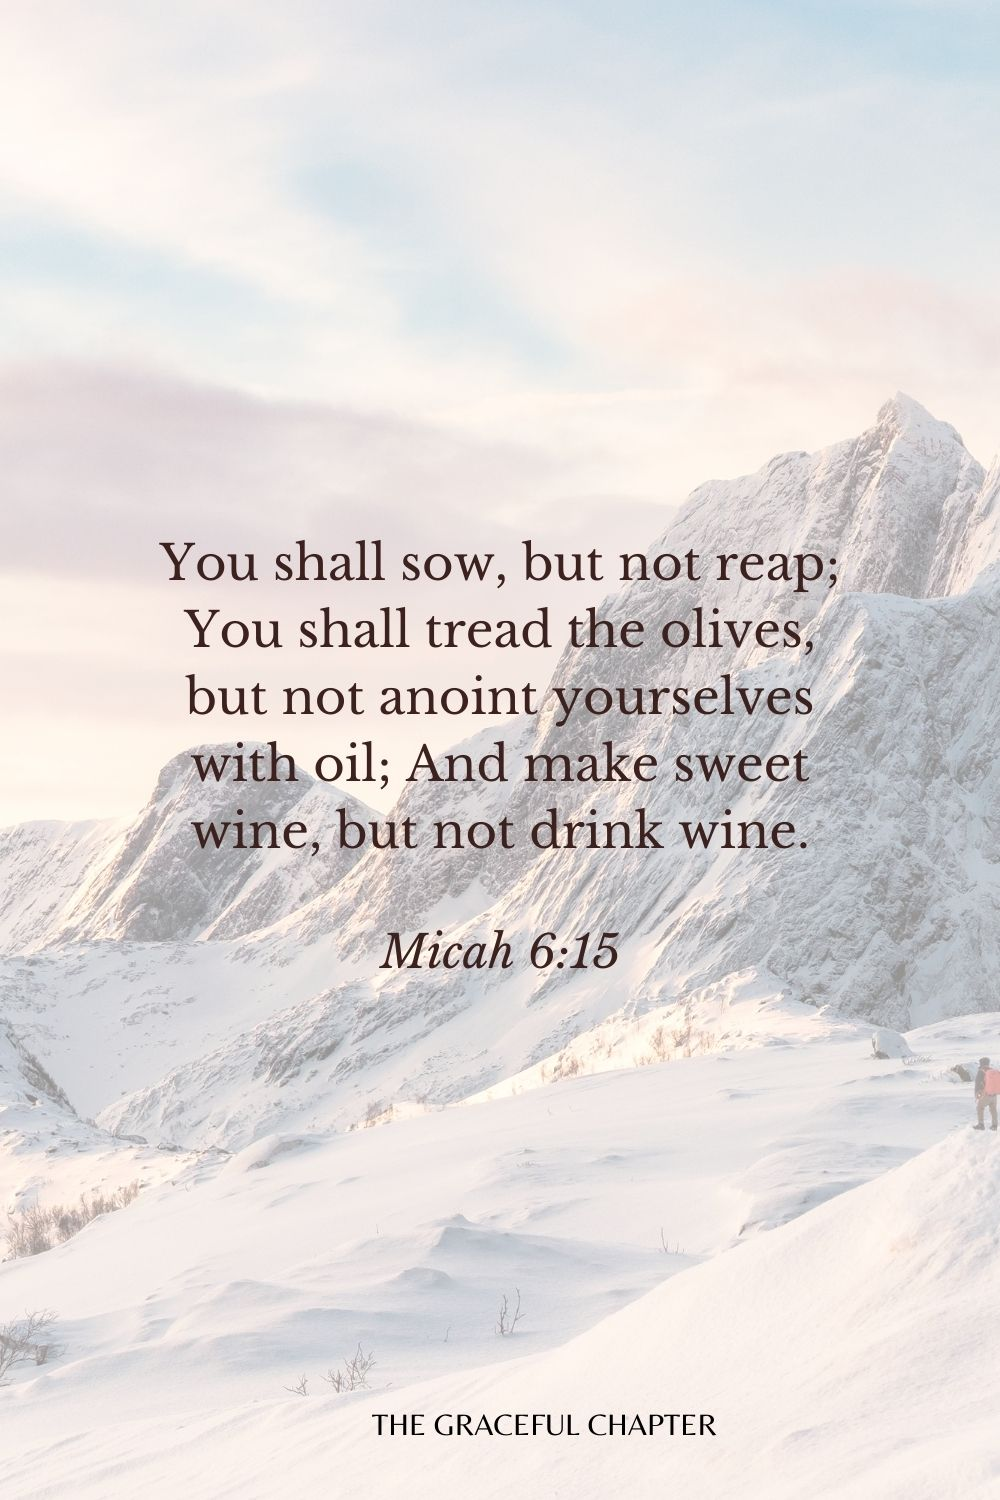 You shall sow, but not reap; You shall tread the olives, but not anoint yourselves with oil; And make sweet wine, but not drink wine. Micah 6:15